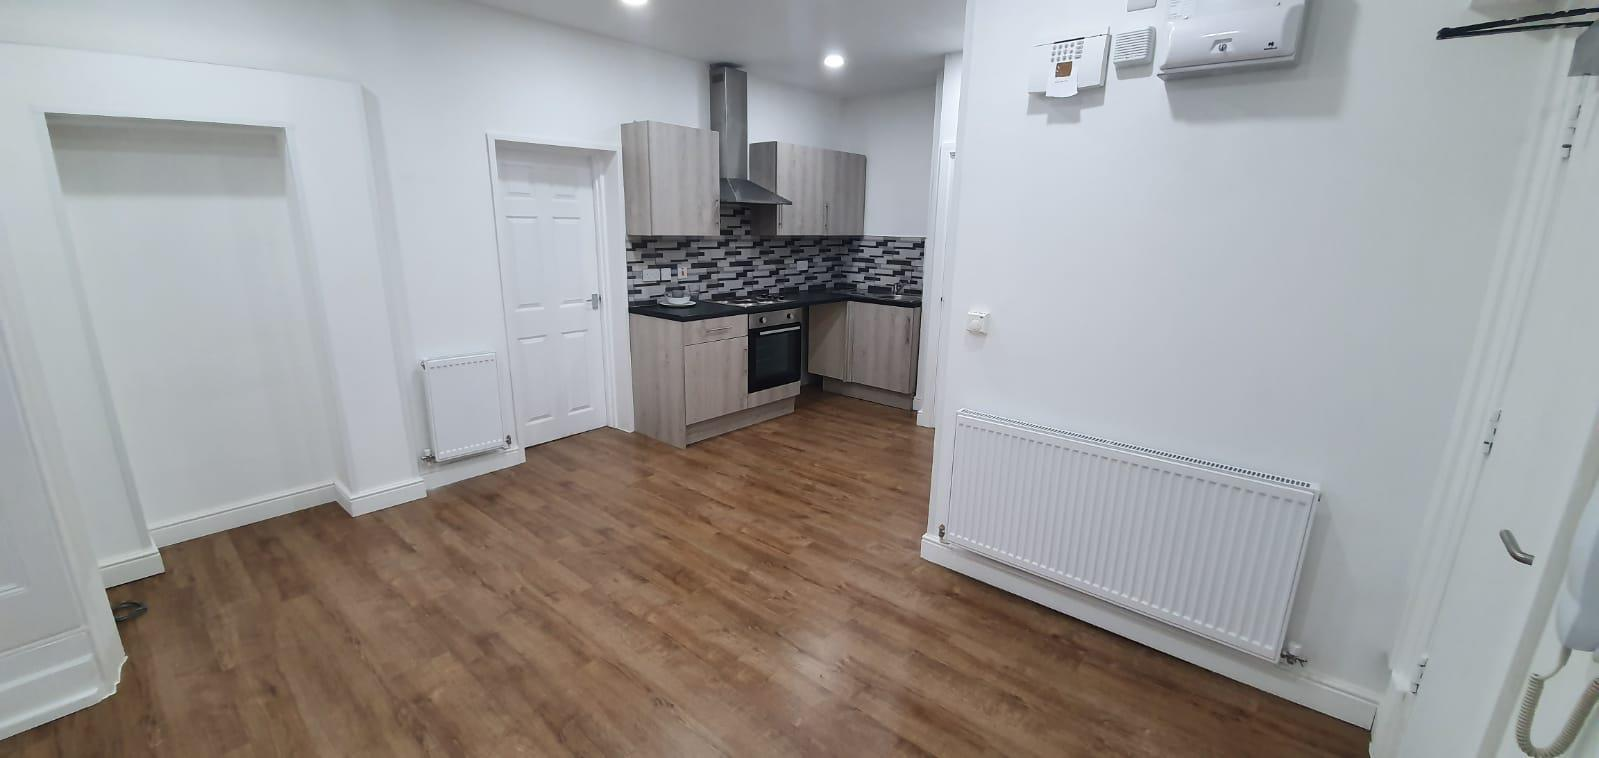 1 bed flat to rent in Newton Road, Staffordshire - Property Image 1